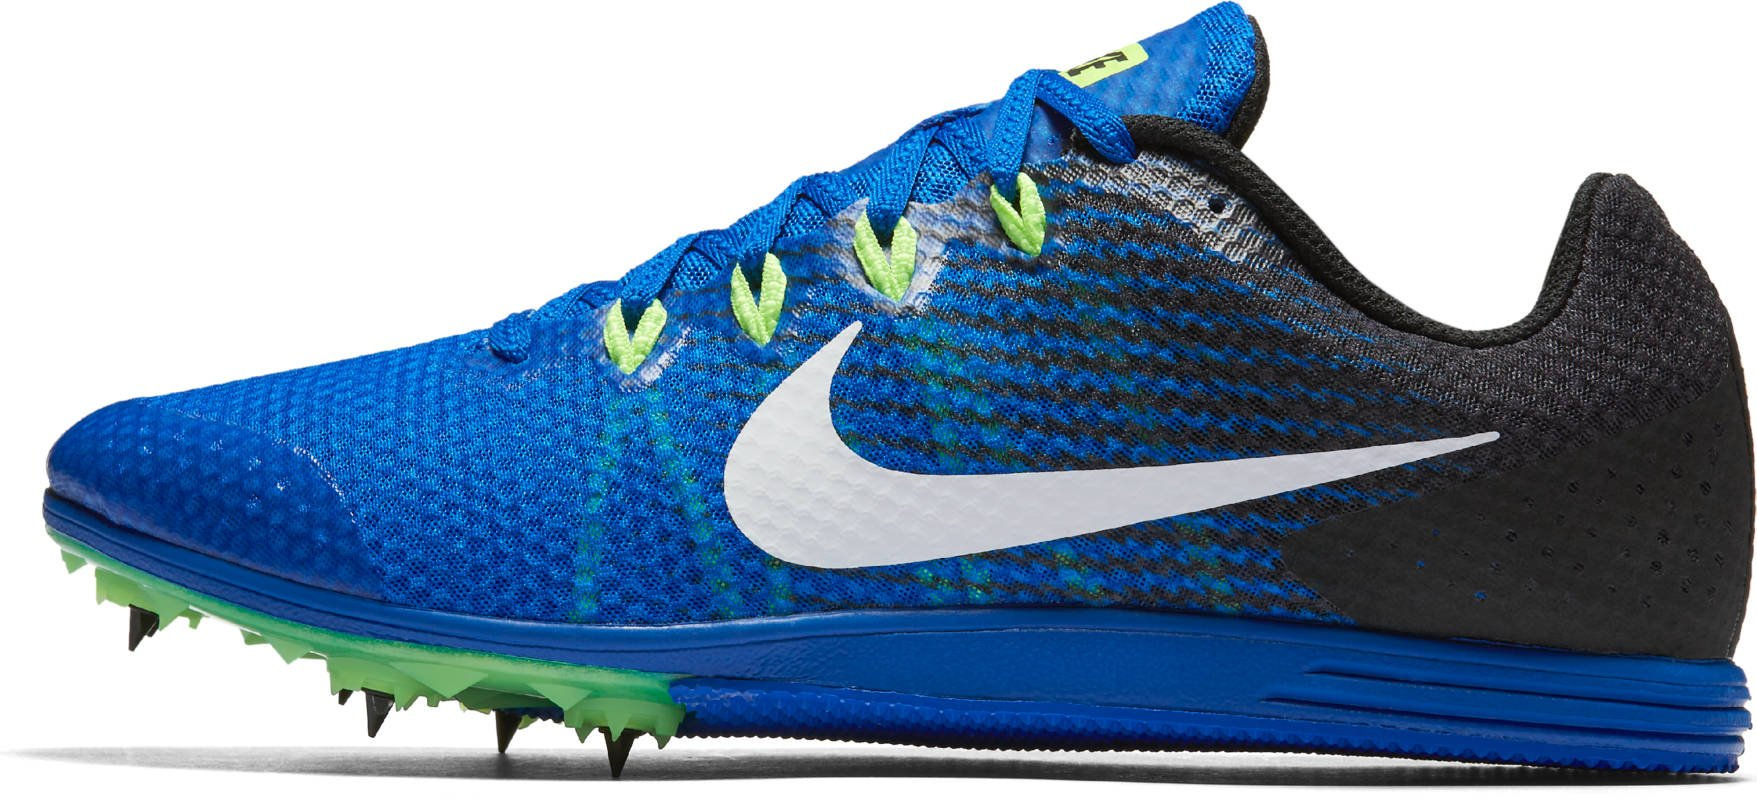 Men's Nike Zoom Rival D 9 Track Spike